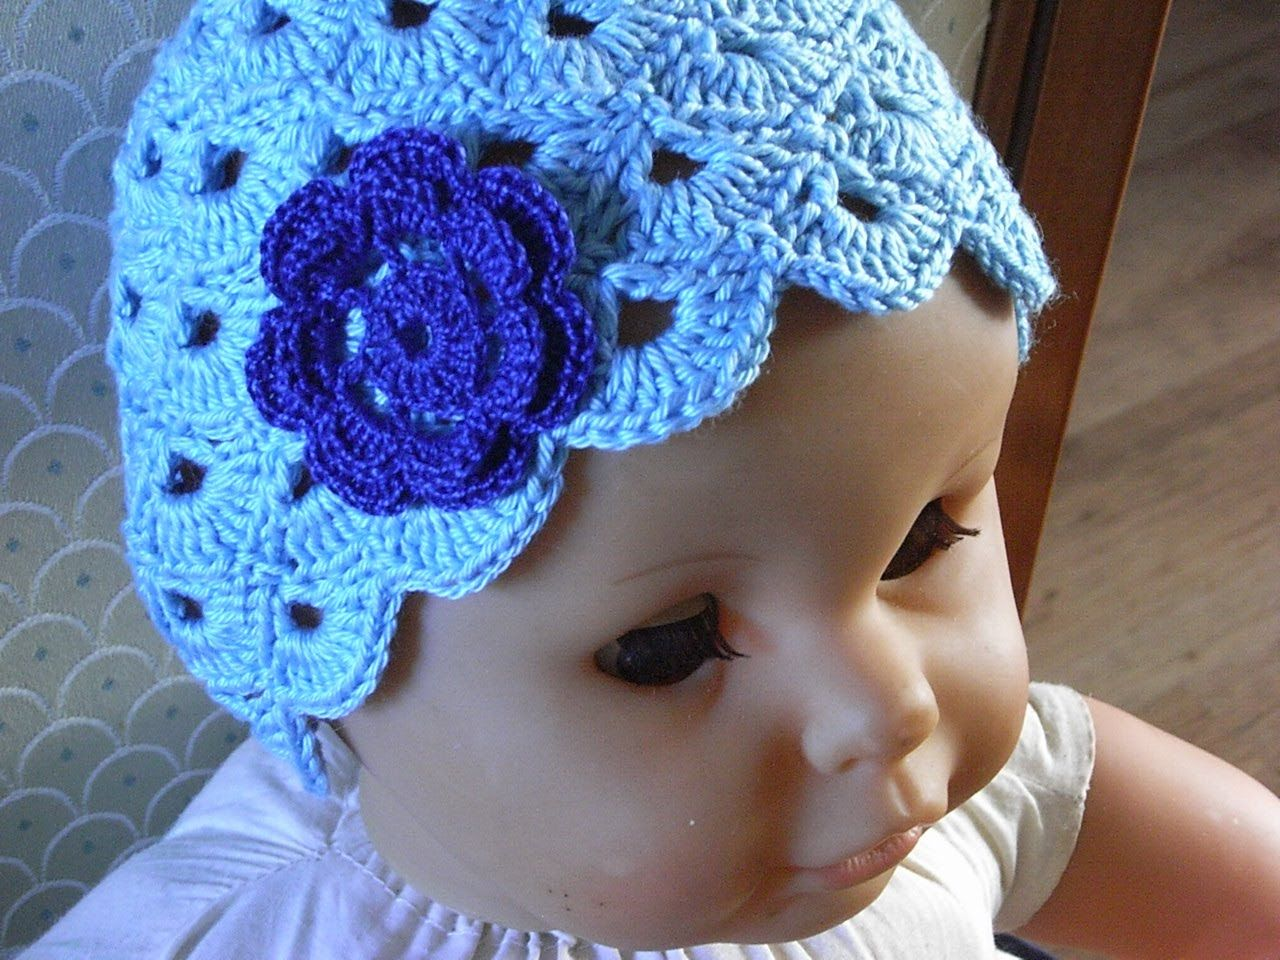 How To Make A Baby Hat With Crochet Magic